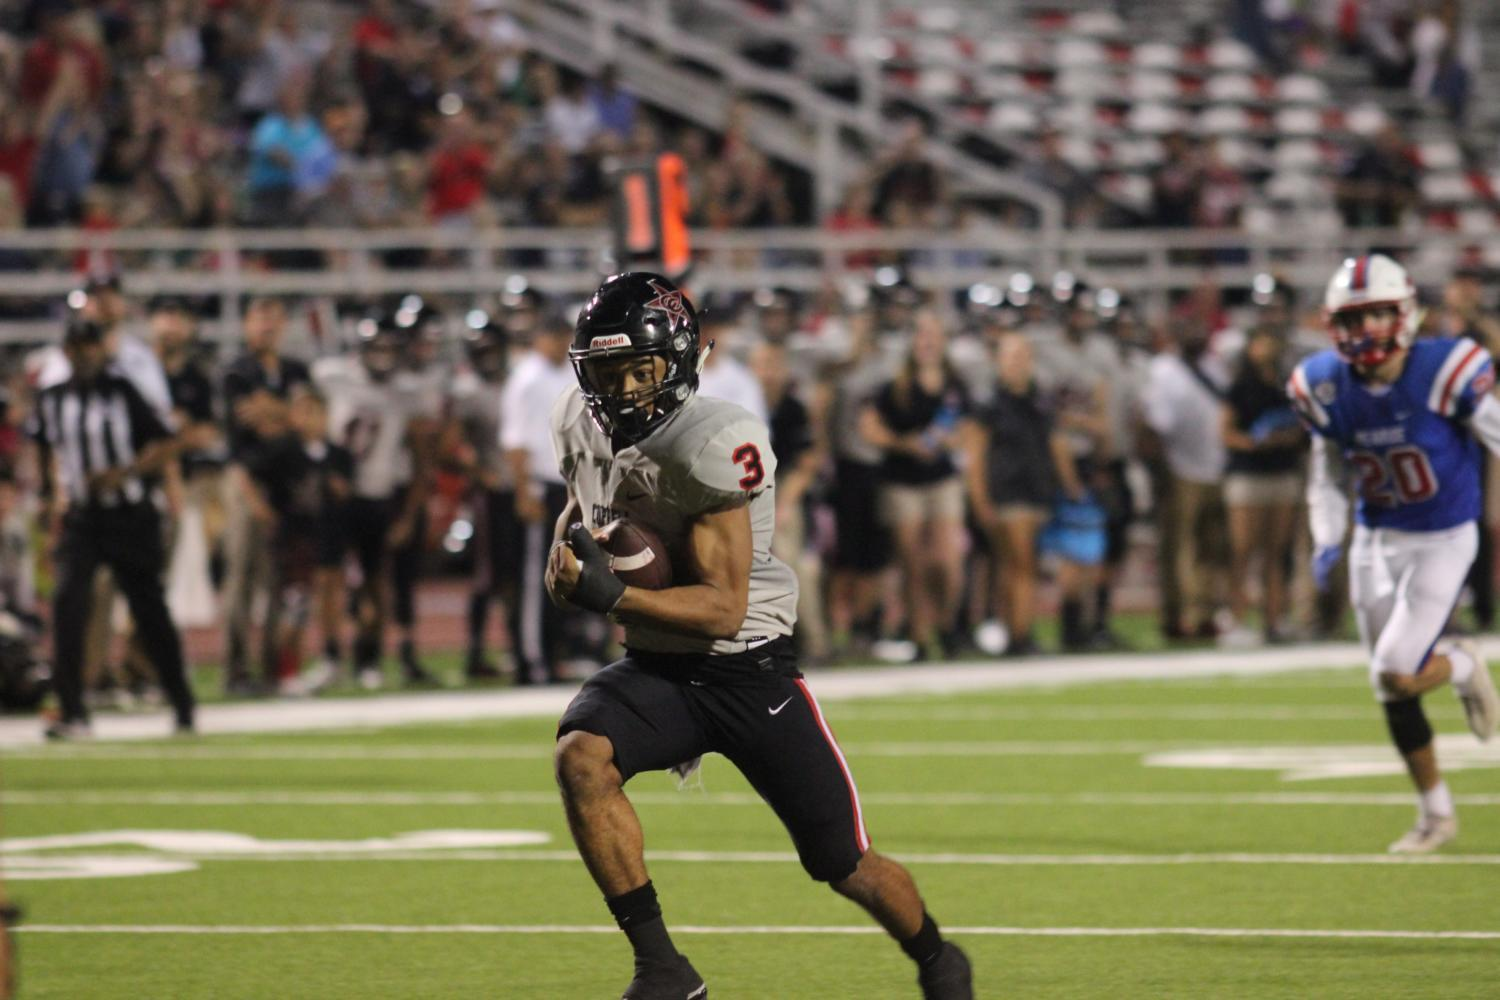 Coppell junior safety Jonathan McGill runs the ball through the JJ Pearce defense to later score a touchdown. The Coppell Cowboys played against JJ Pearce Mustangs at the Eagle-Mustangs Stadium in Richardson with the Cowboys winning the score of 28-21.